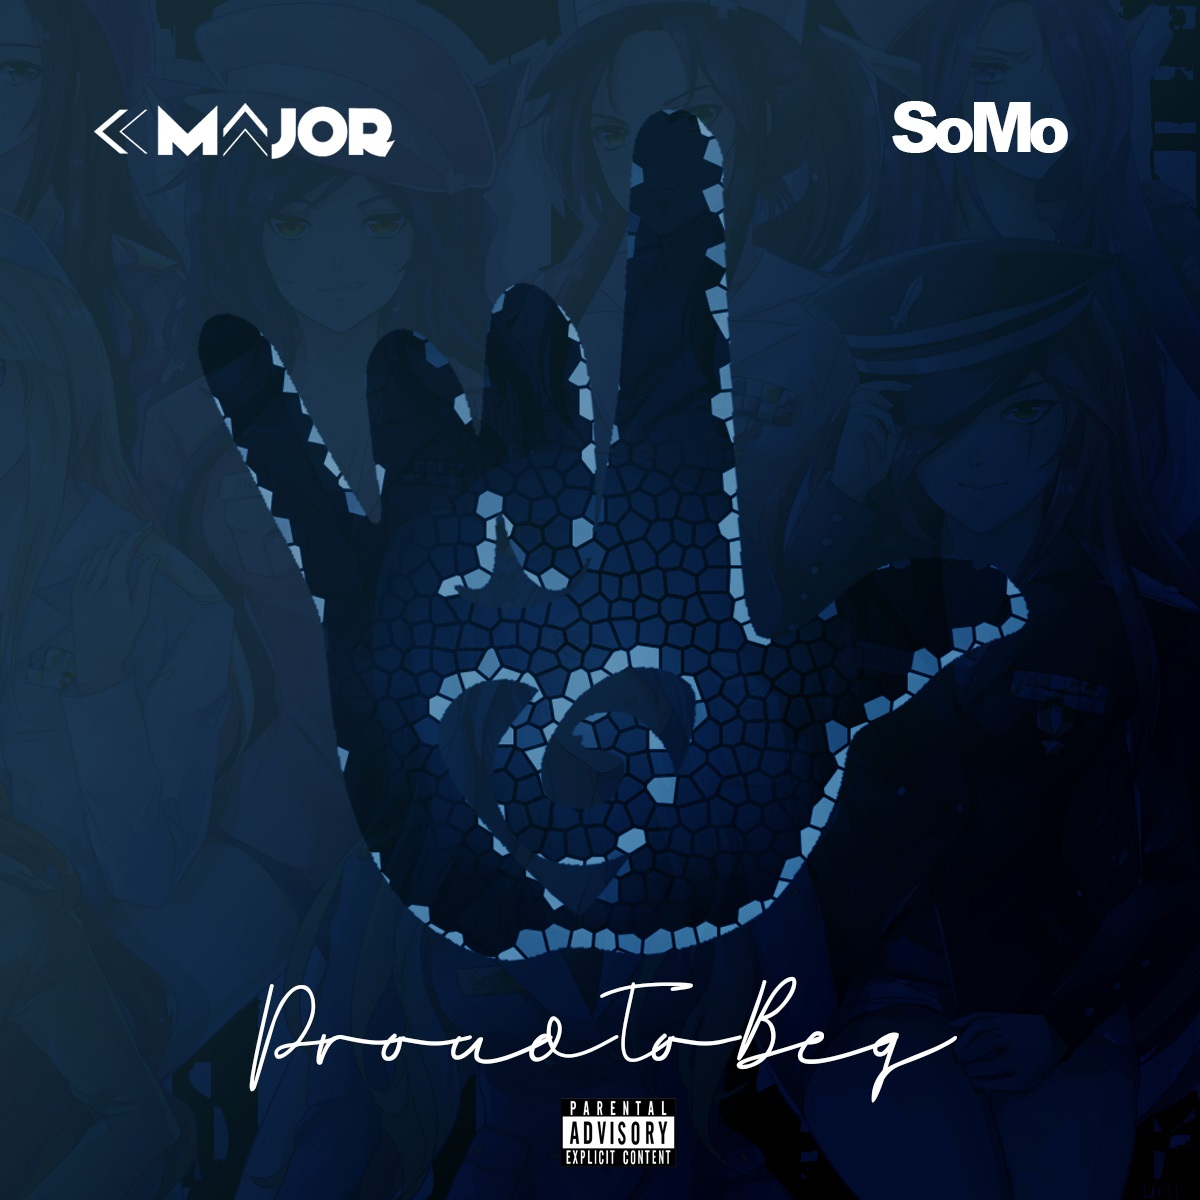 New Music: K-Major ft. SoMo – Proud To Beg